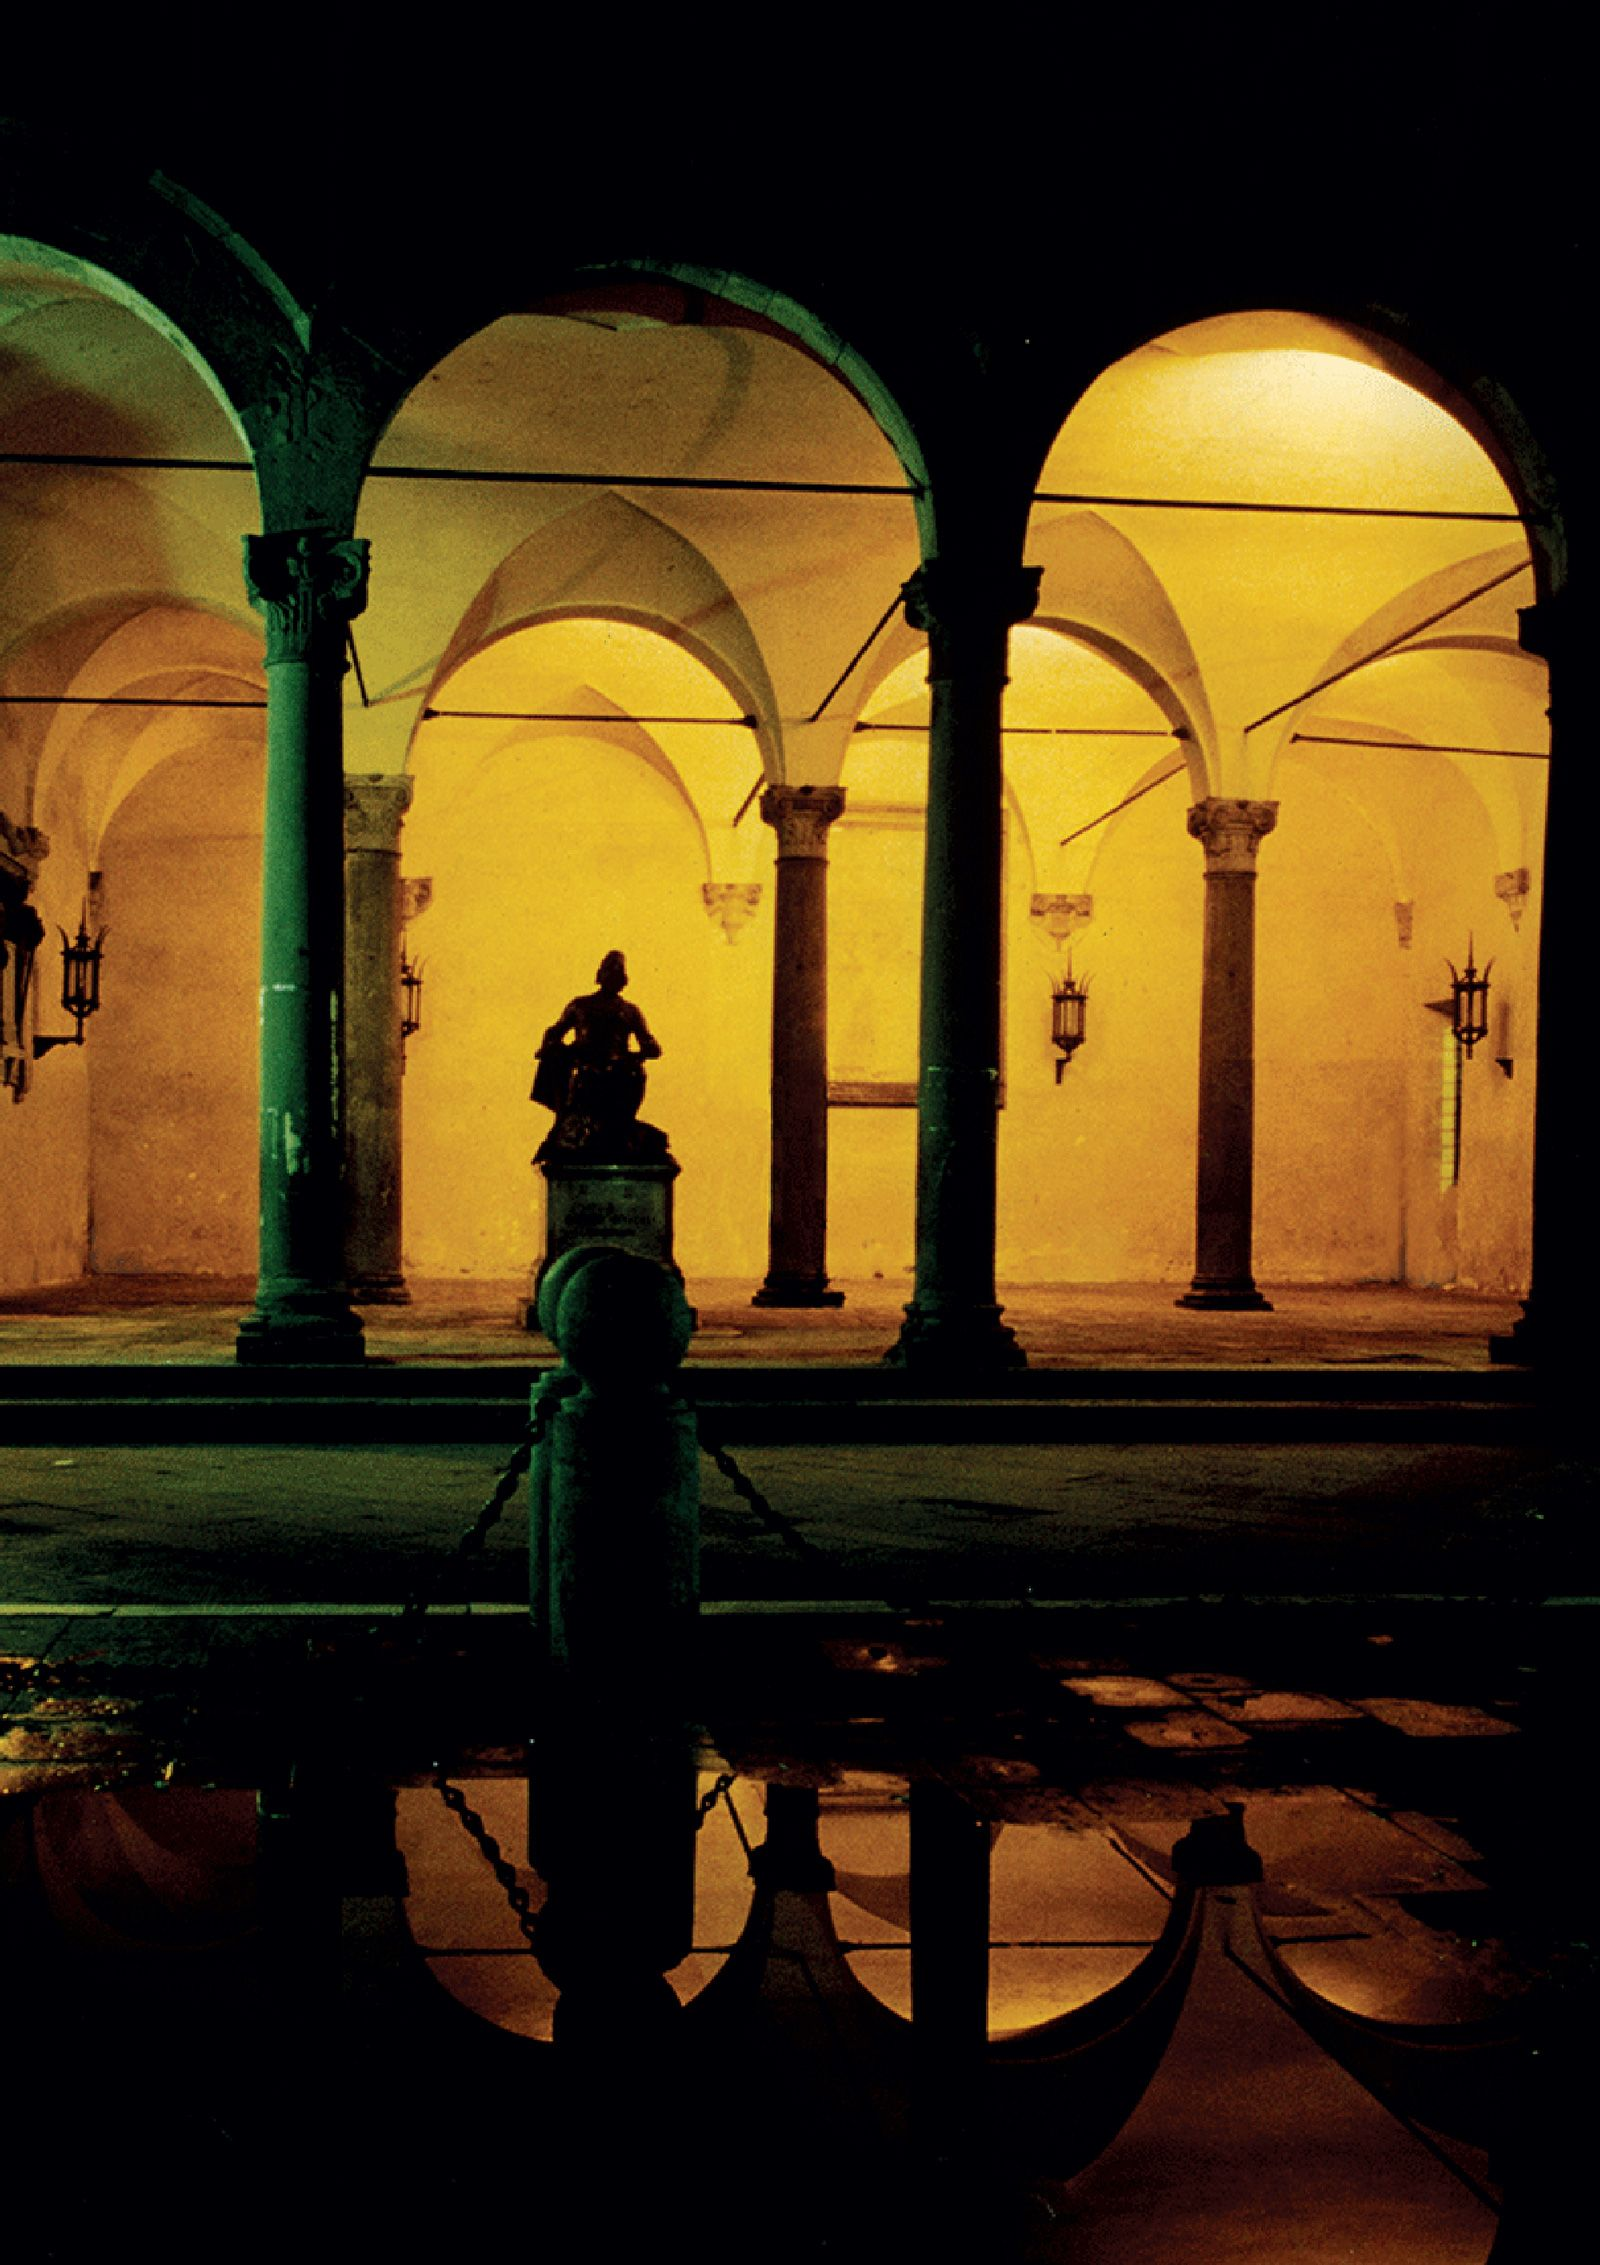 Lucca - The city of mysteries